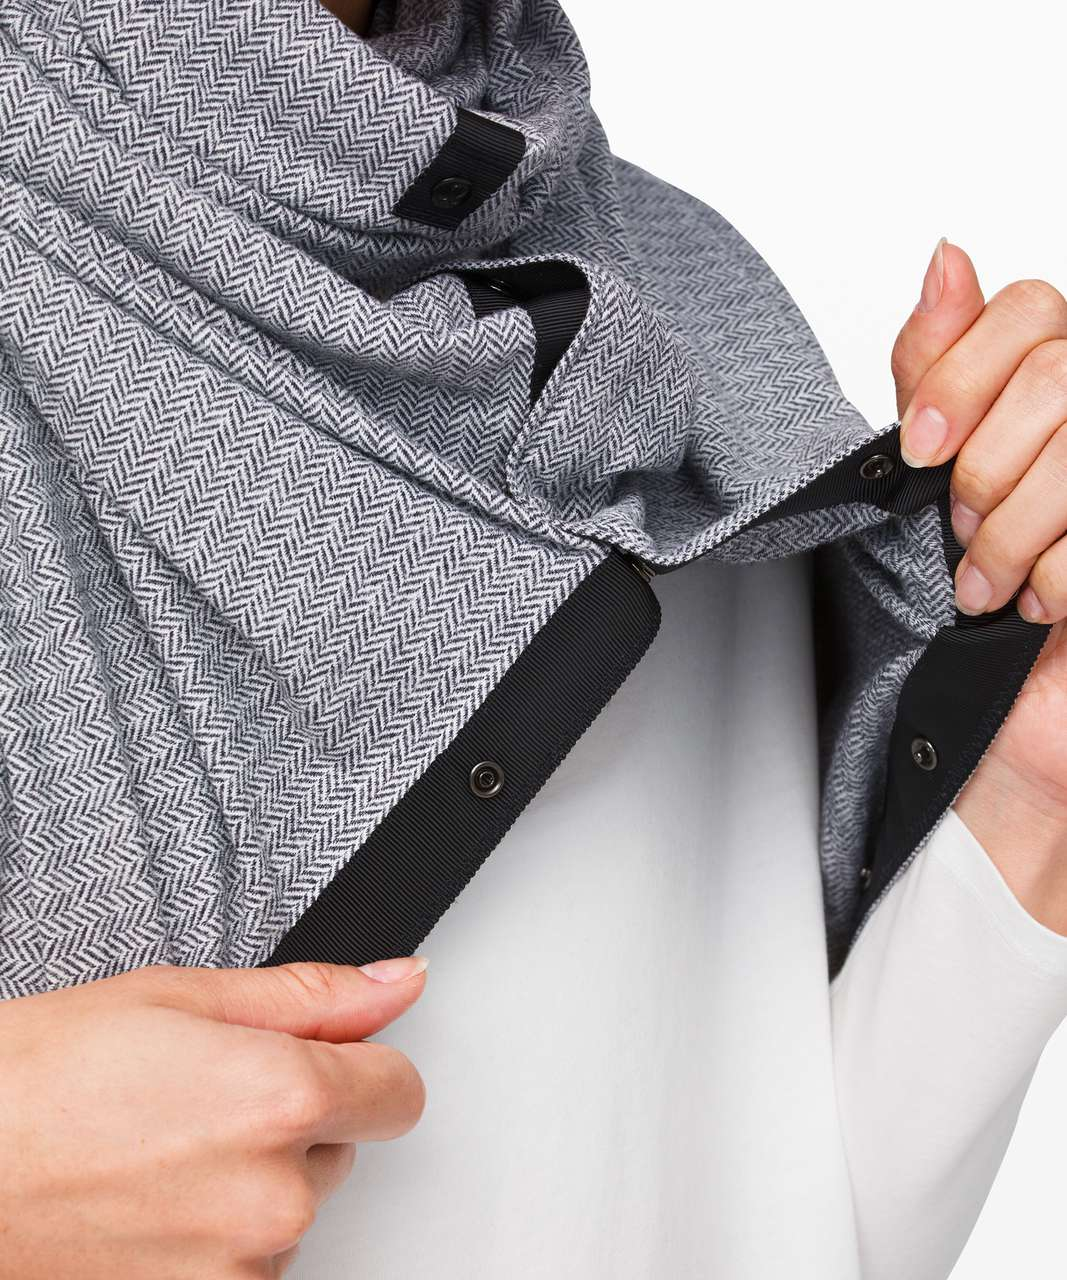 Lululemon Vinyasa Scarf *Rulu - Heathered Herringbone Heathered Black White